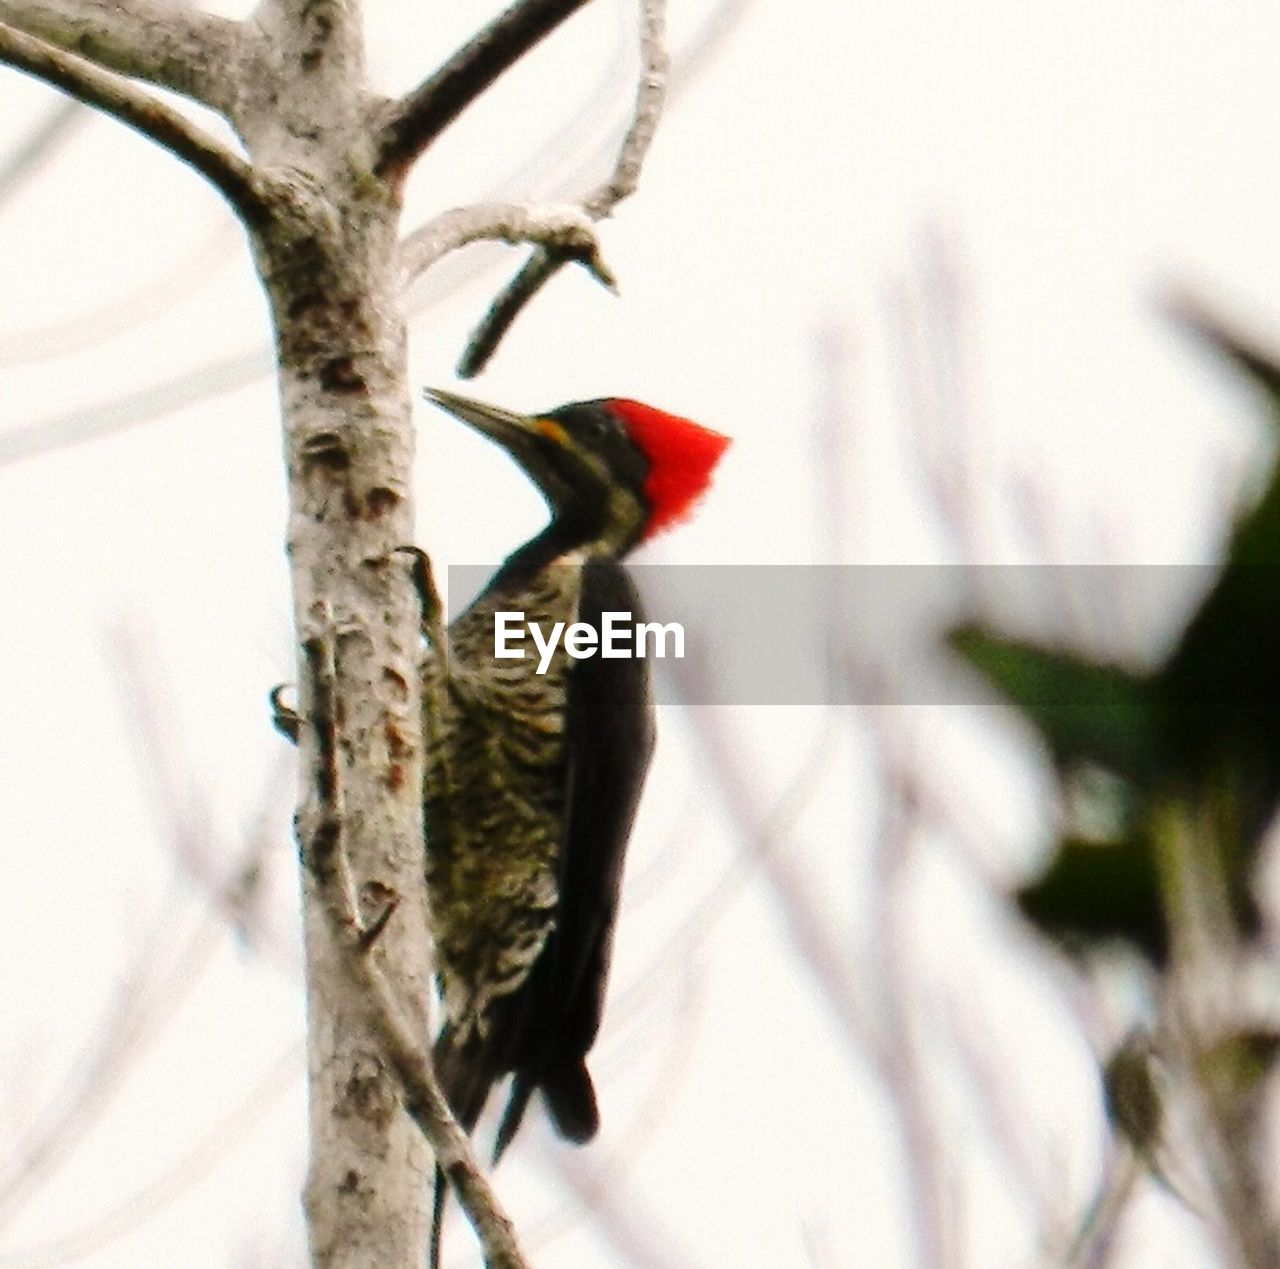 bird, animals in the wild, one animal, animal themes, tree, nature, animal wildlife, perching, branch, focus on foreground, beauty in nature, no people, day, outdoors, woodpecker, snow, close-up